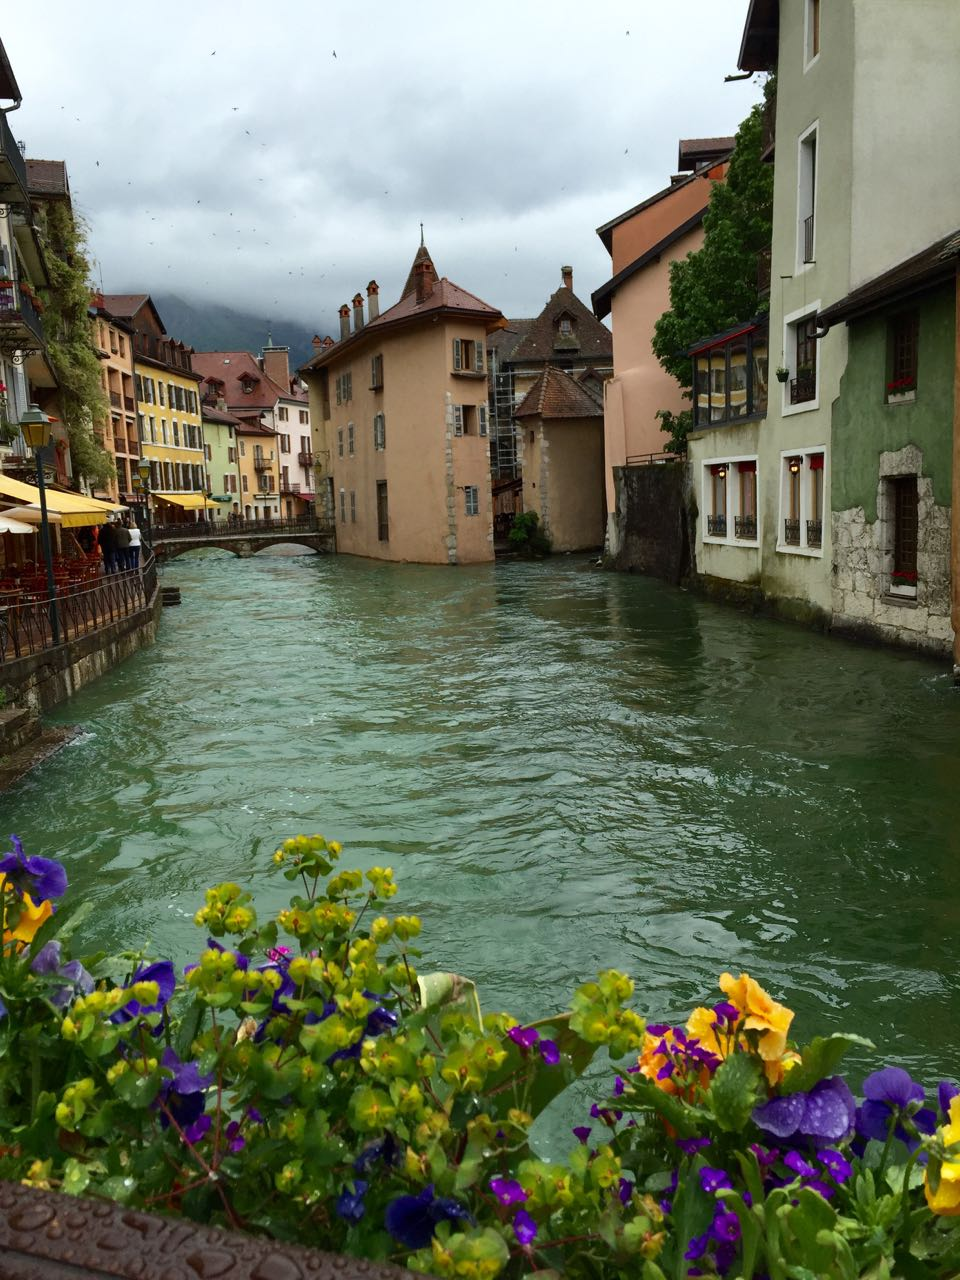 Canals and pretty buildings in Annecy